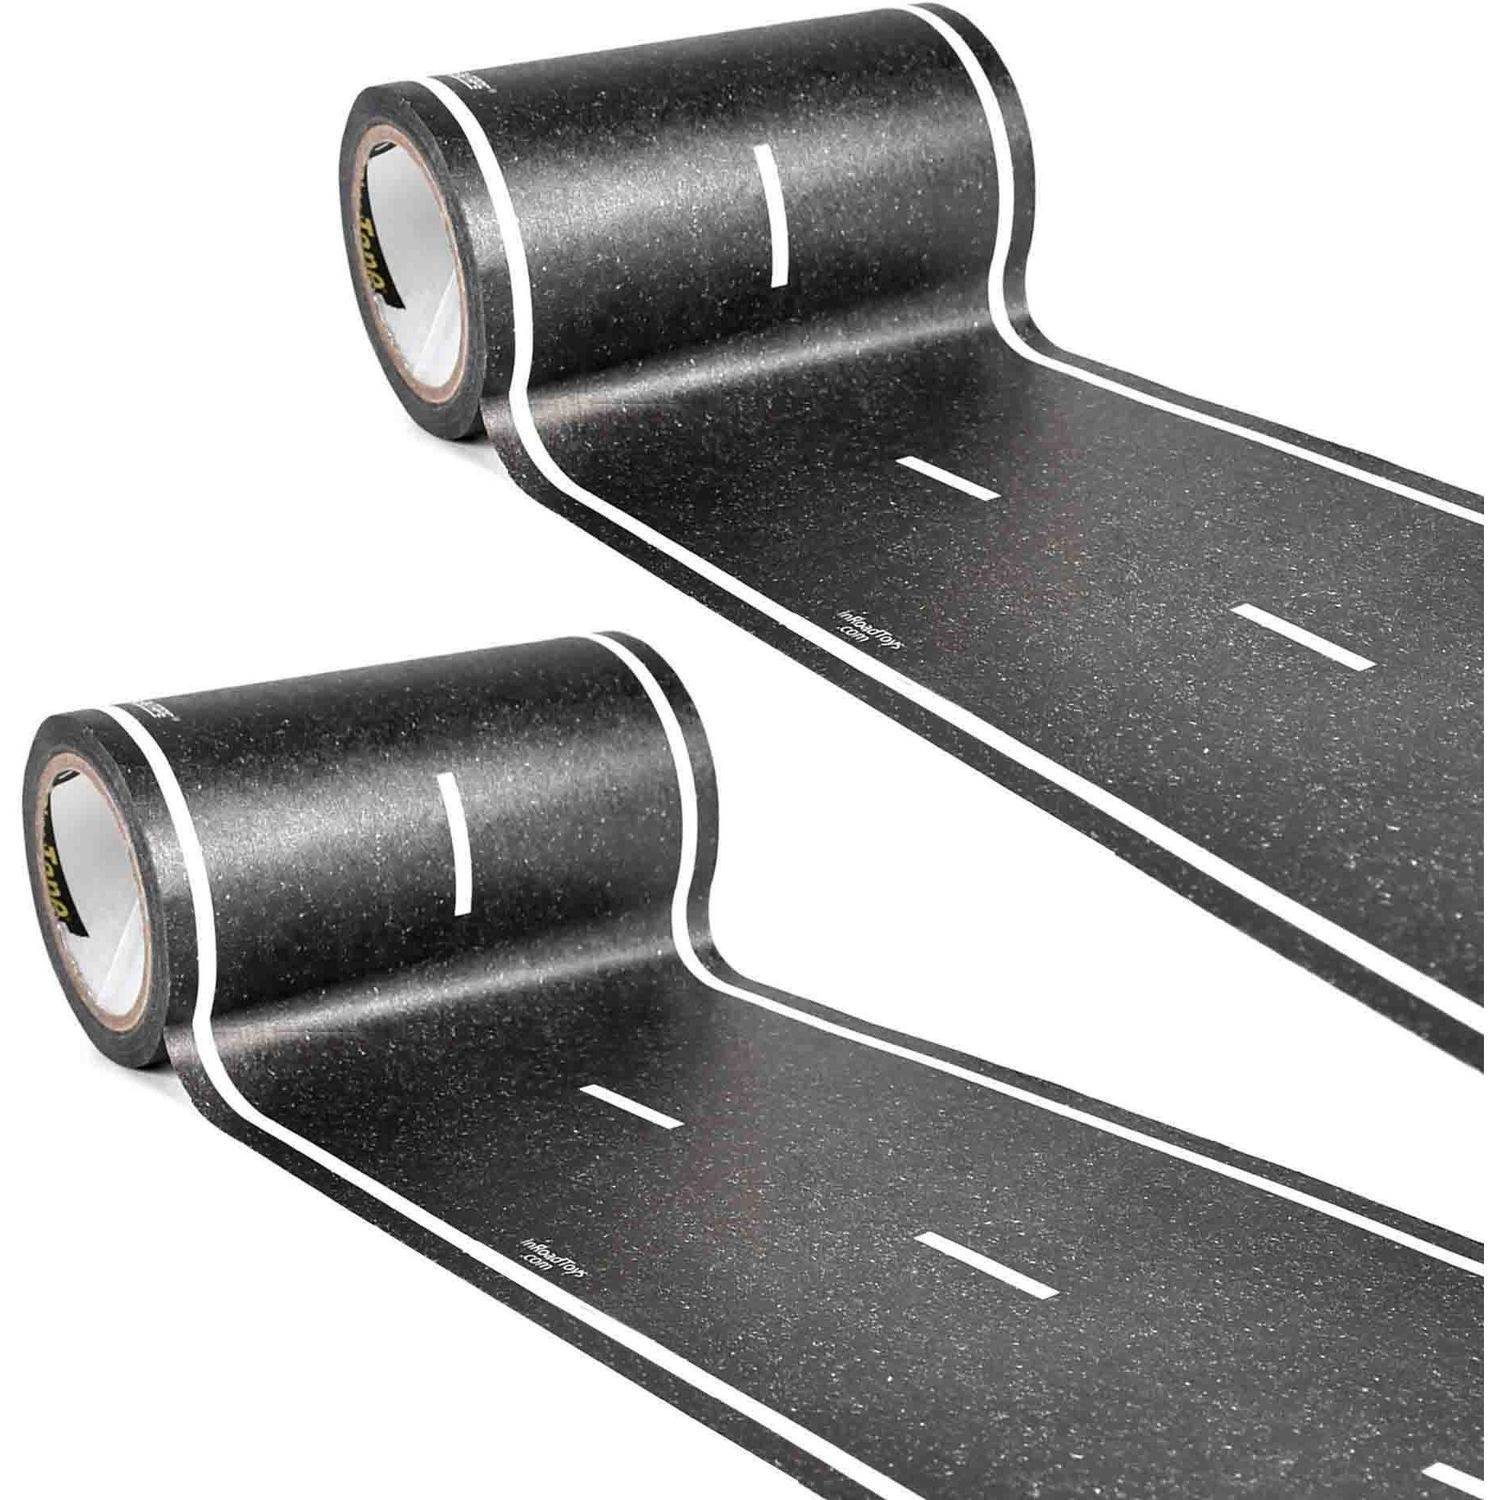 "PlayTape Classic Road Series Bundle 30' x 4"" Black Road, Pack of 2"